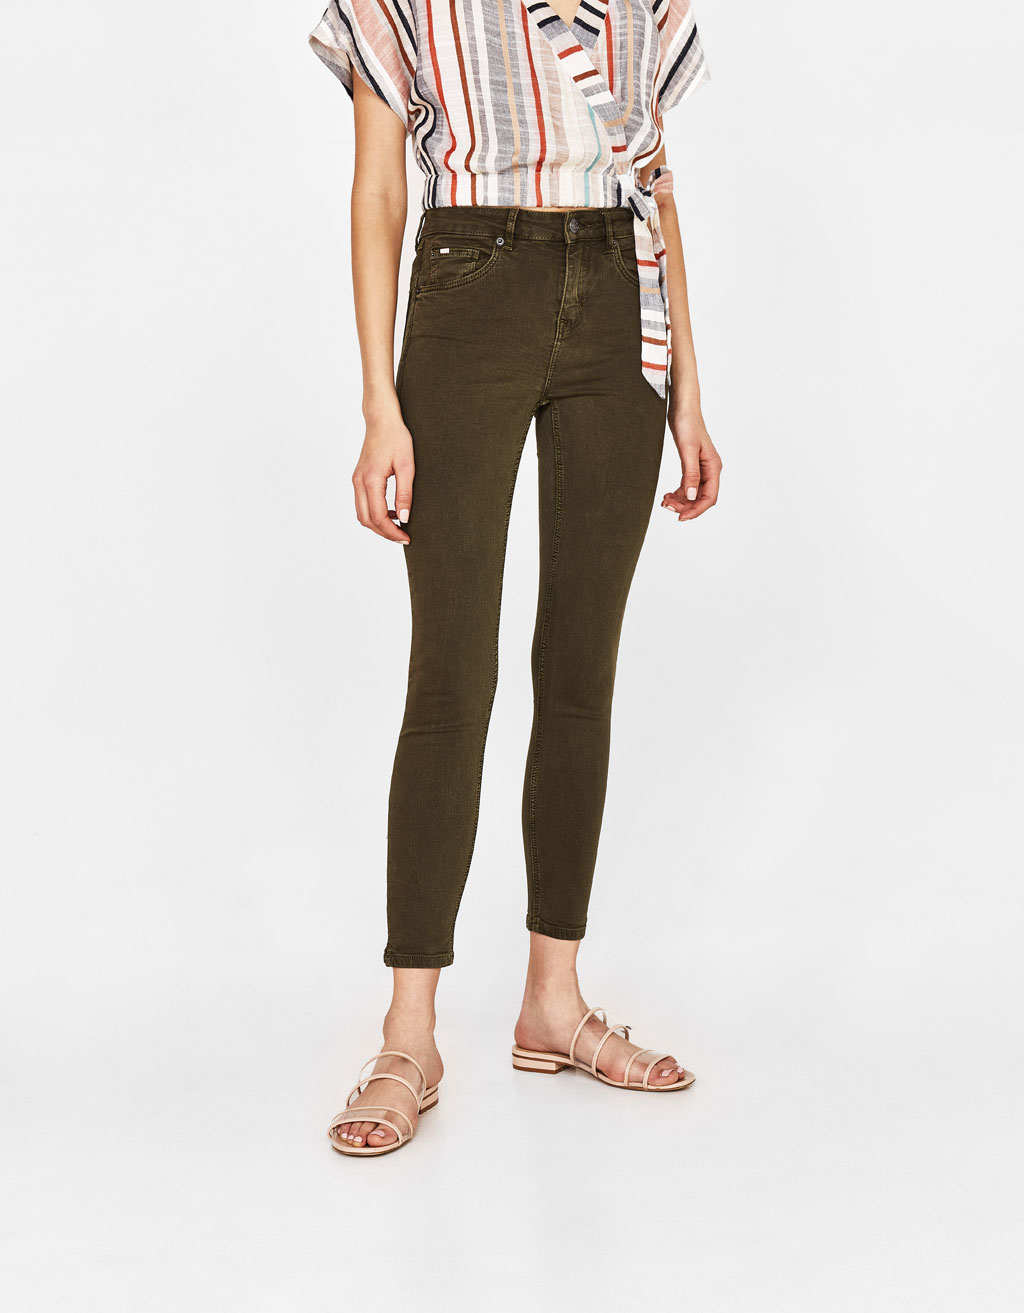 Super Skinny Medium Waist Pants